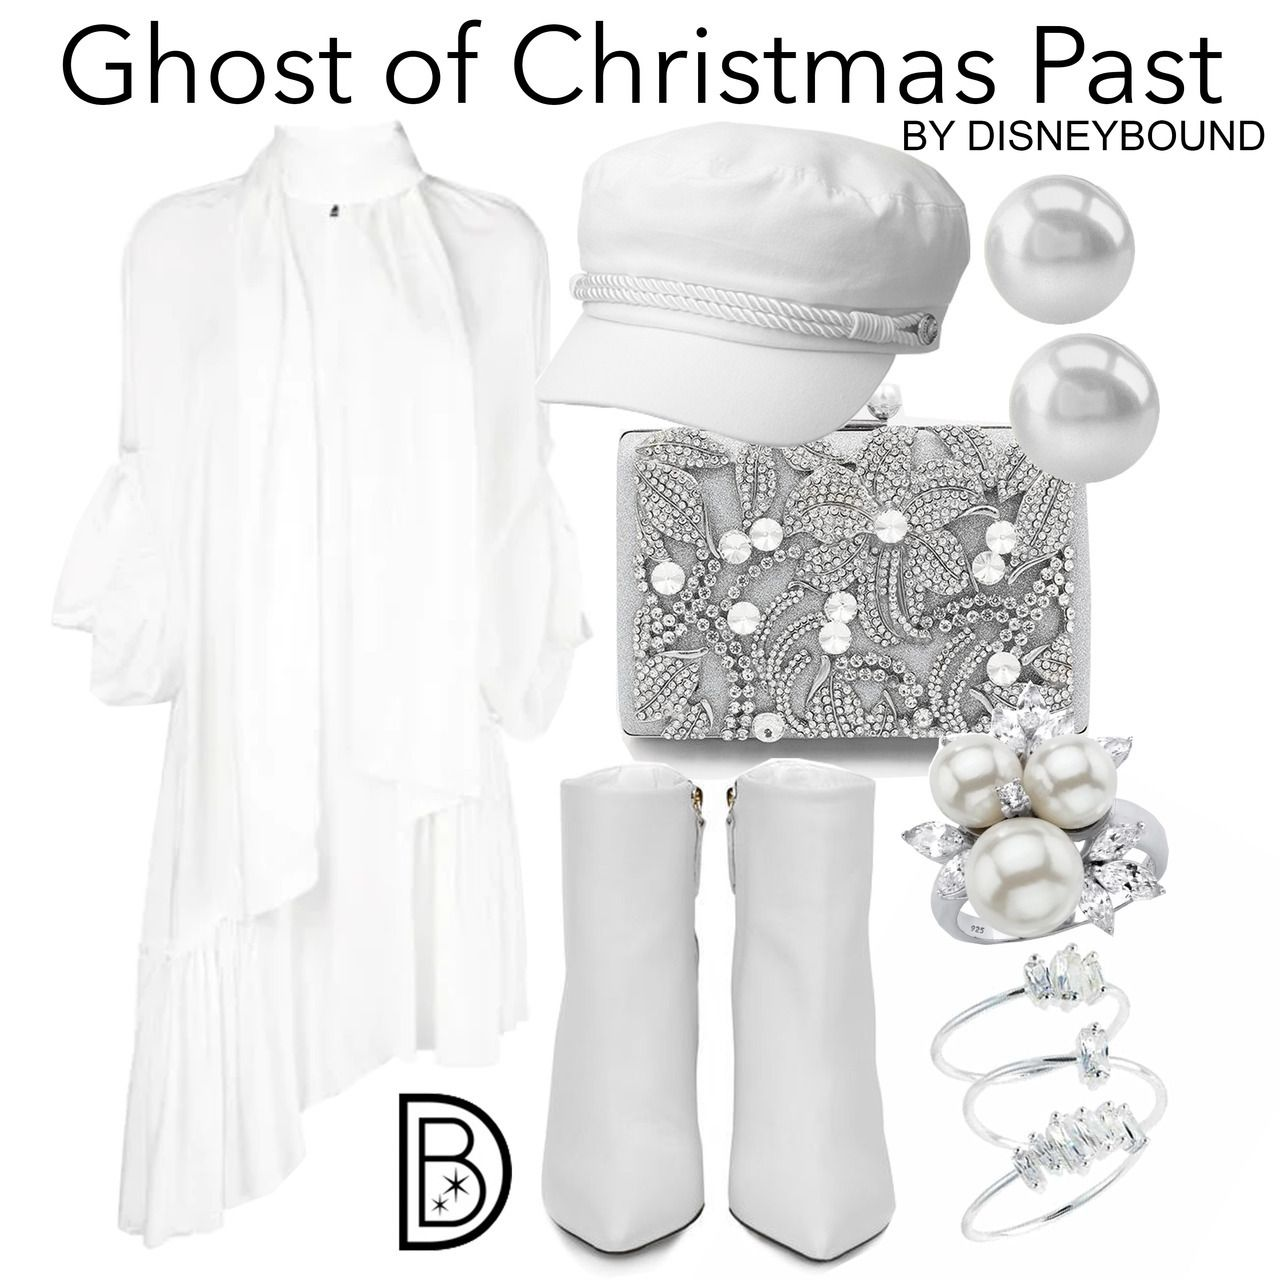 DisneyBound - Ghost of Christmas Past | Disneybound, Ghost of christmas past, Muppet christmas carol